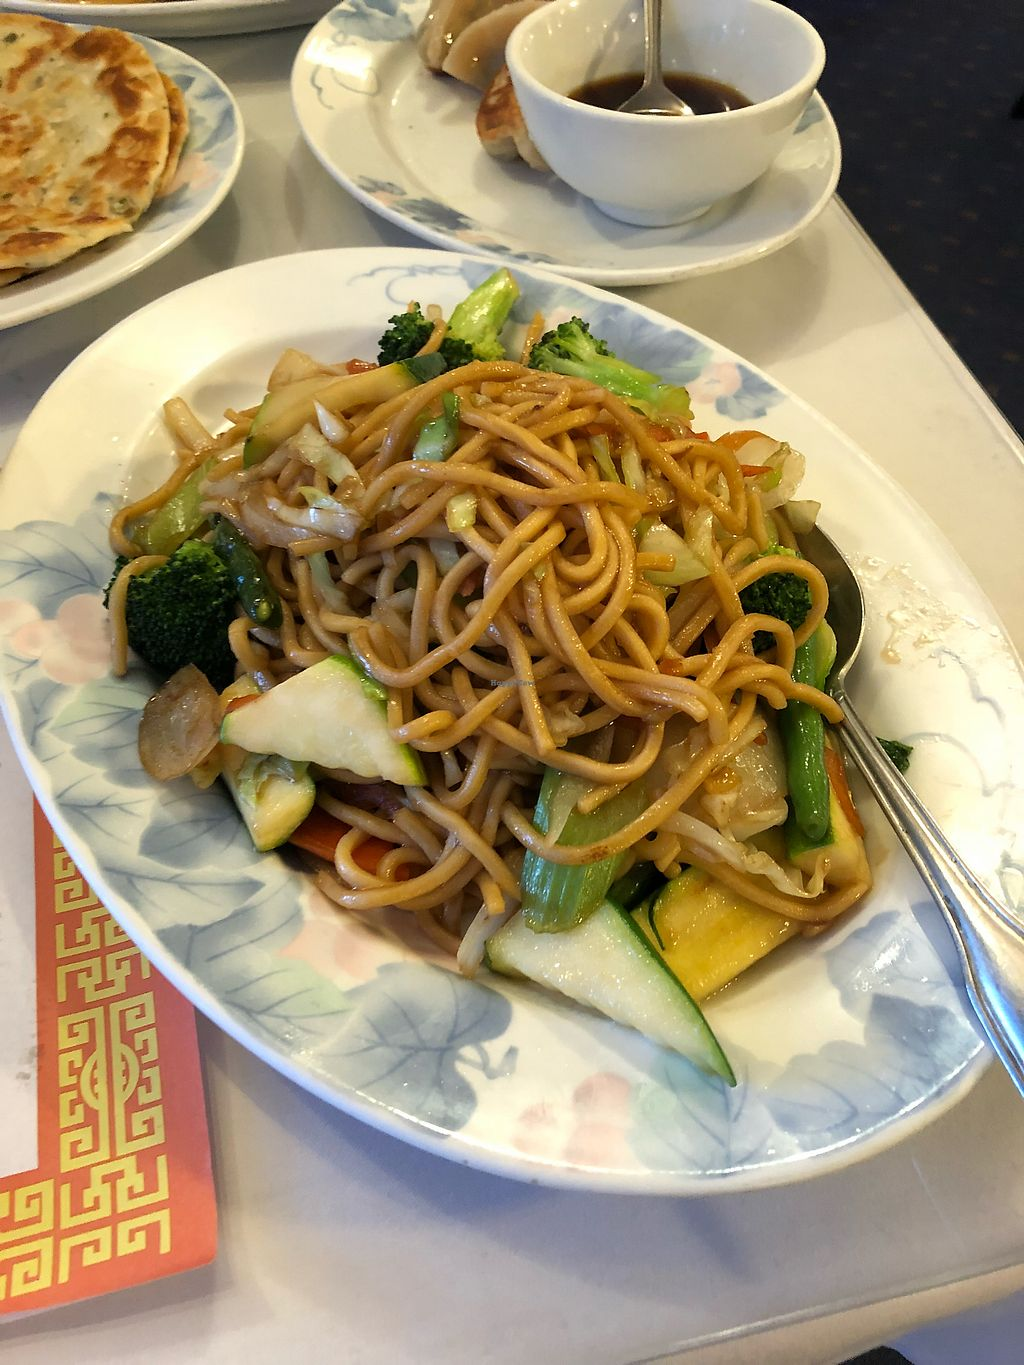 """Photo of China Chef  by <a href=""""/members/profile/yourmoderndayhippie"""">yourmoderndayhippie</a> <br/>Chow Mein (greatly exceeded expectations!) <br/> March 6, 2018  - <a href='/contact/abuse/image/69912/367331'>Report</a>"""